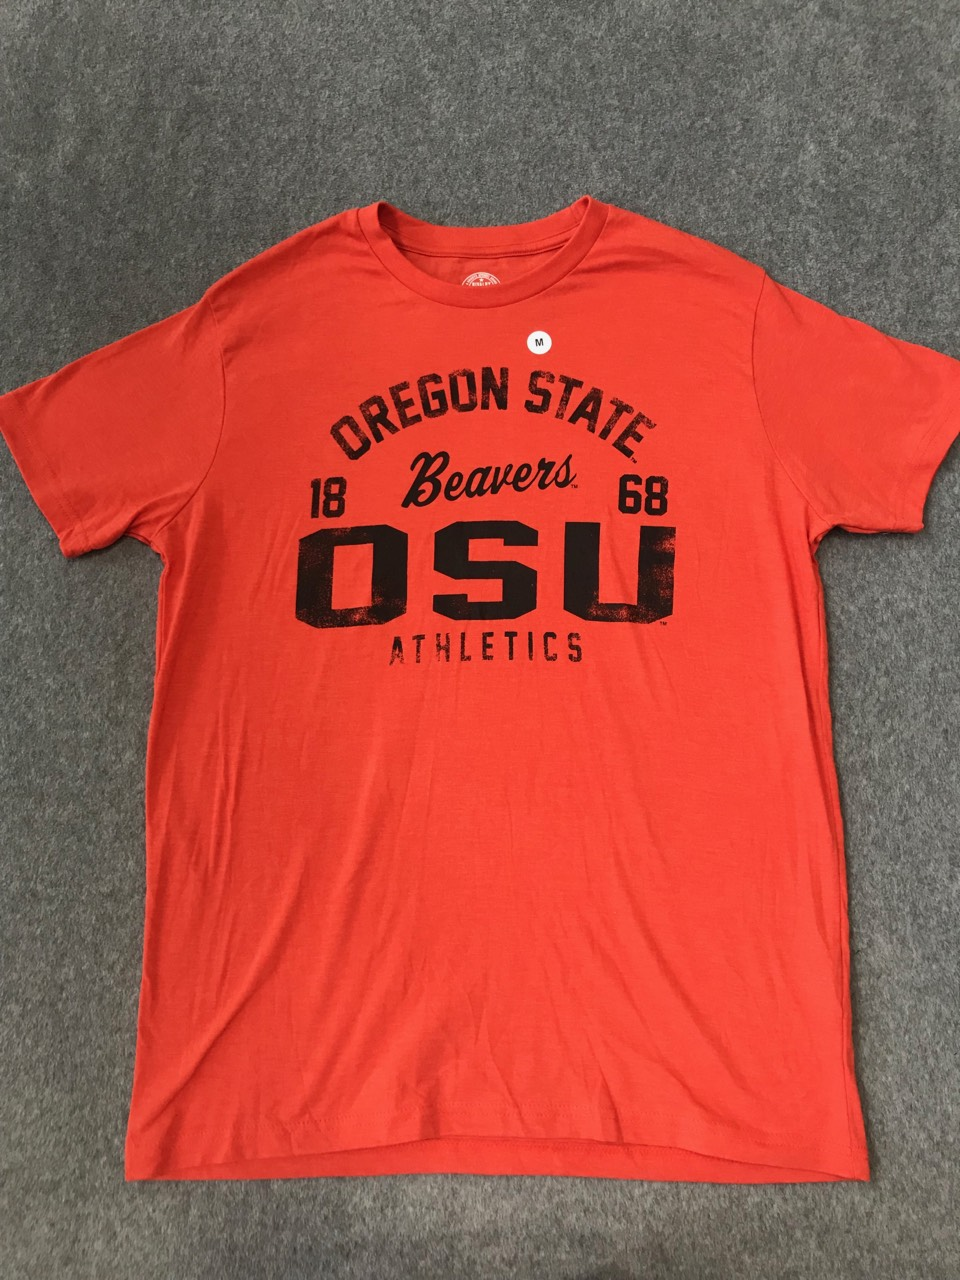 Oregon Beavers Mens Tee size Large